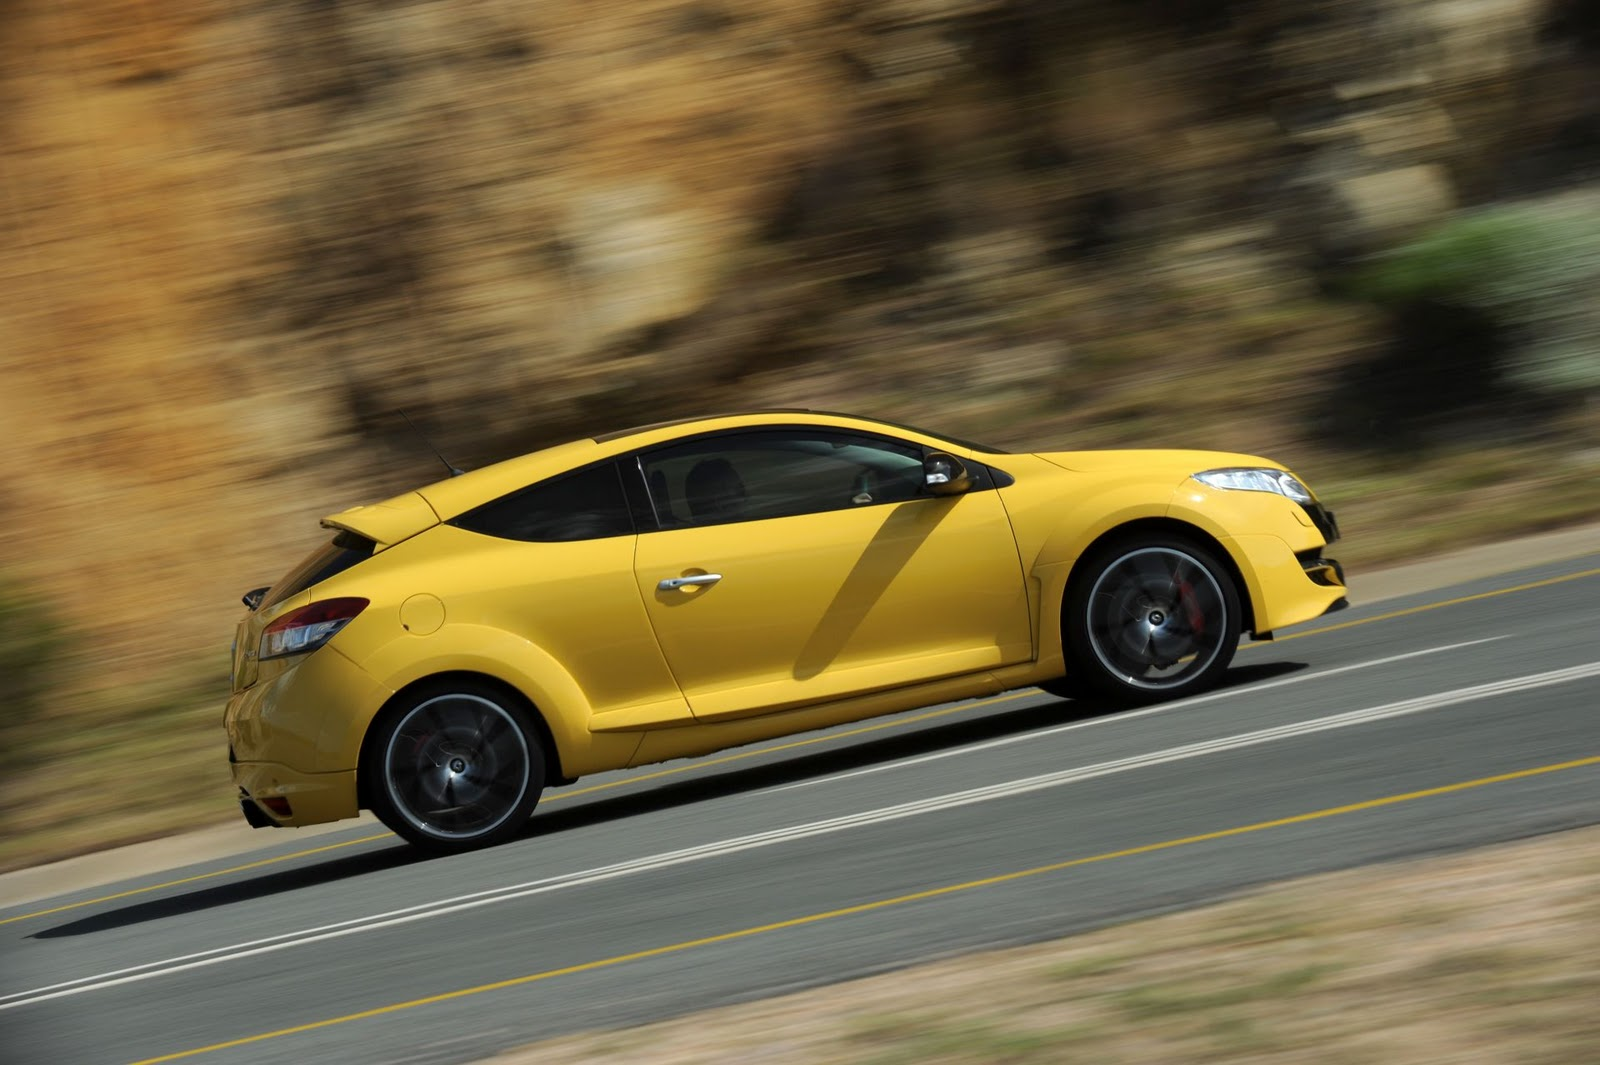 Megane Rs 2010 : mini coupe concept feverish renault megane rs tops hot hatch pile ~ Medecine-chirurgie-esthetiques.com Avis de Voitures